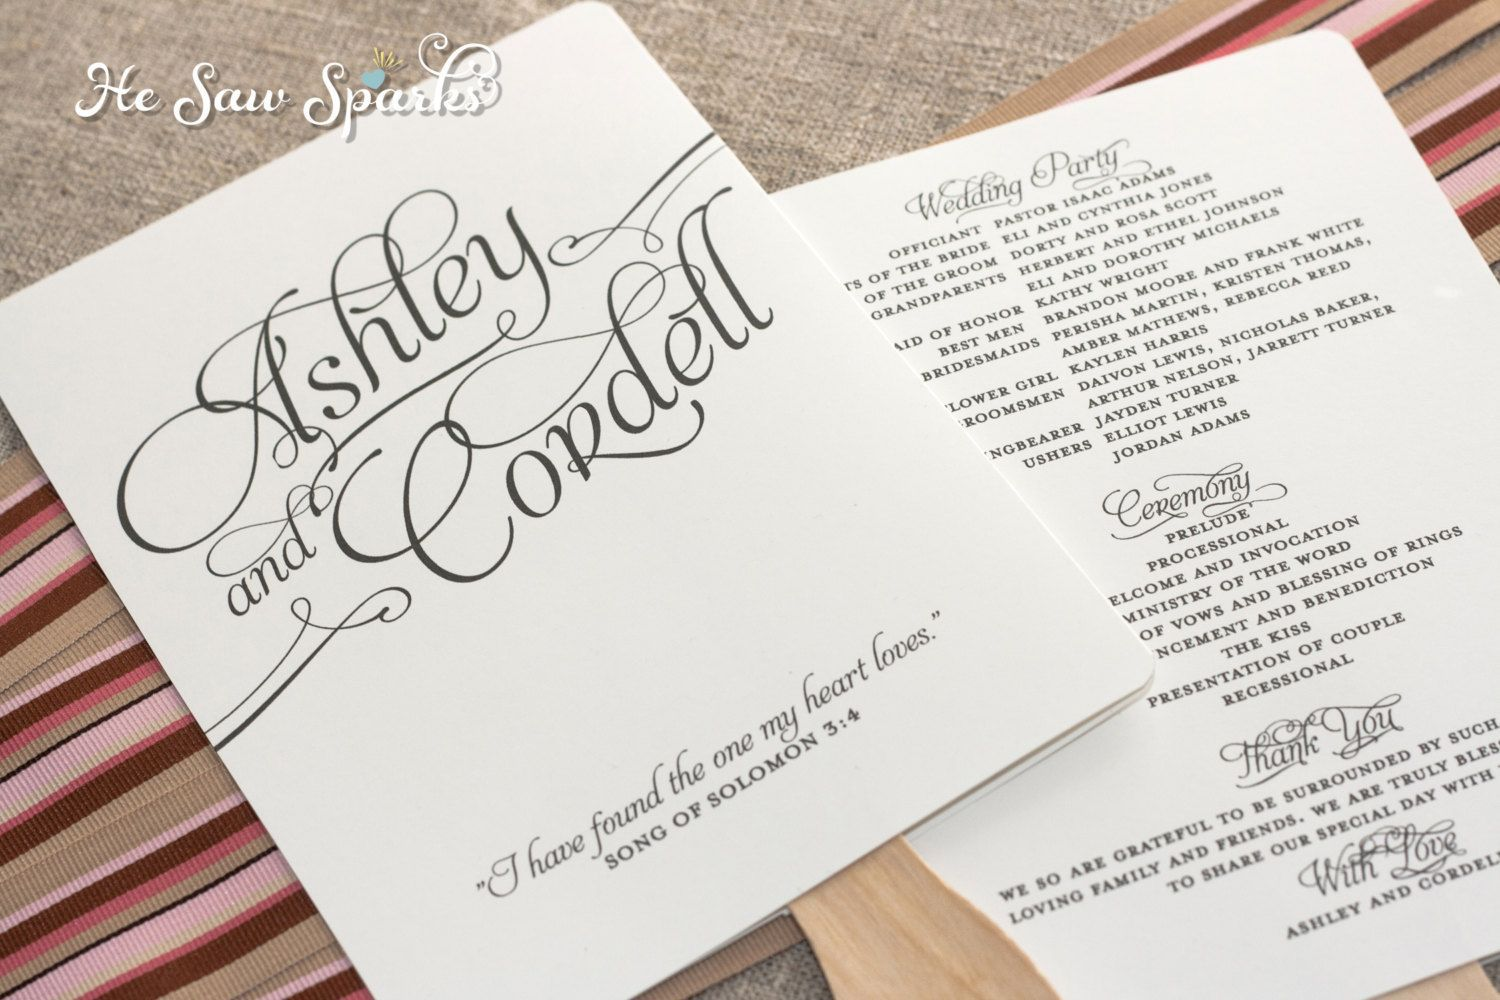 002 Archaicawful Free Printable Wedding Program Paddle Fan Template High Resolution  TemplatesFull